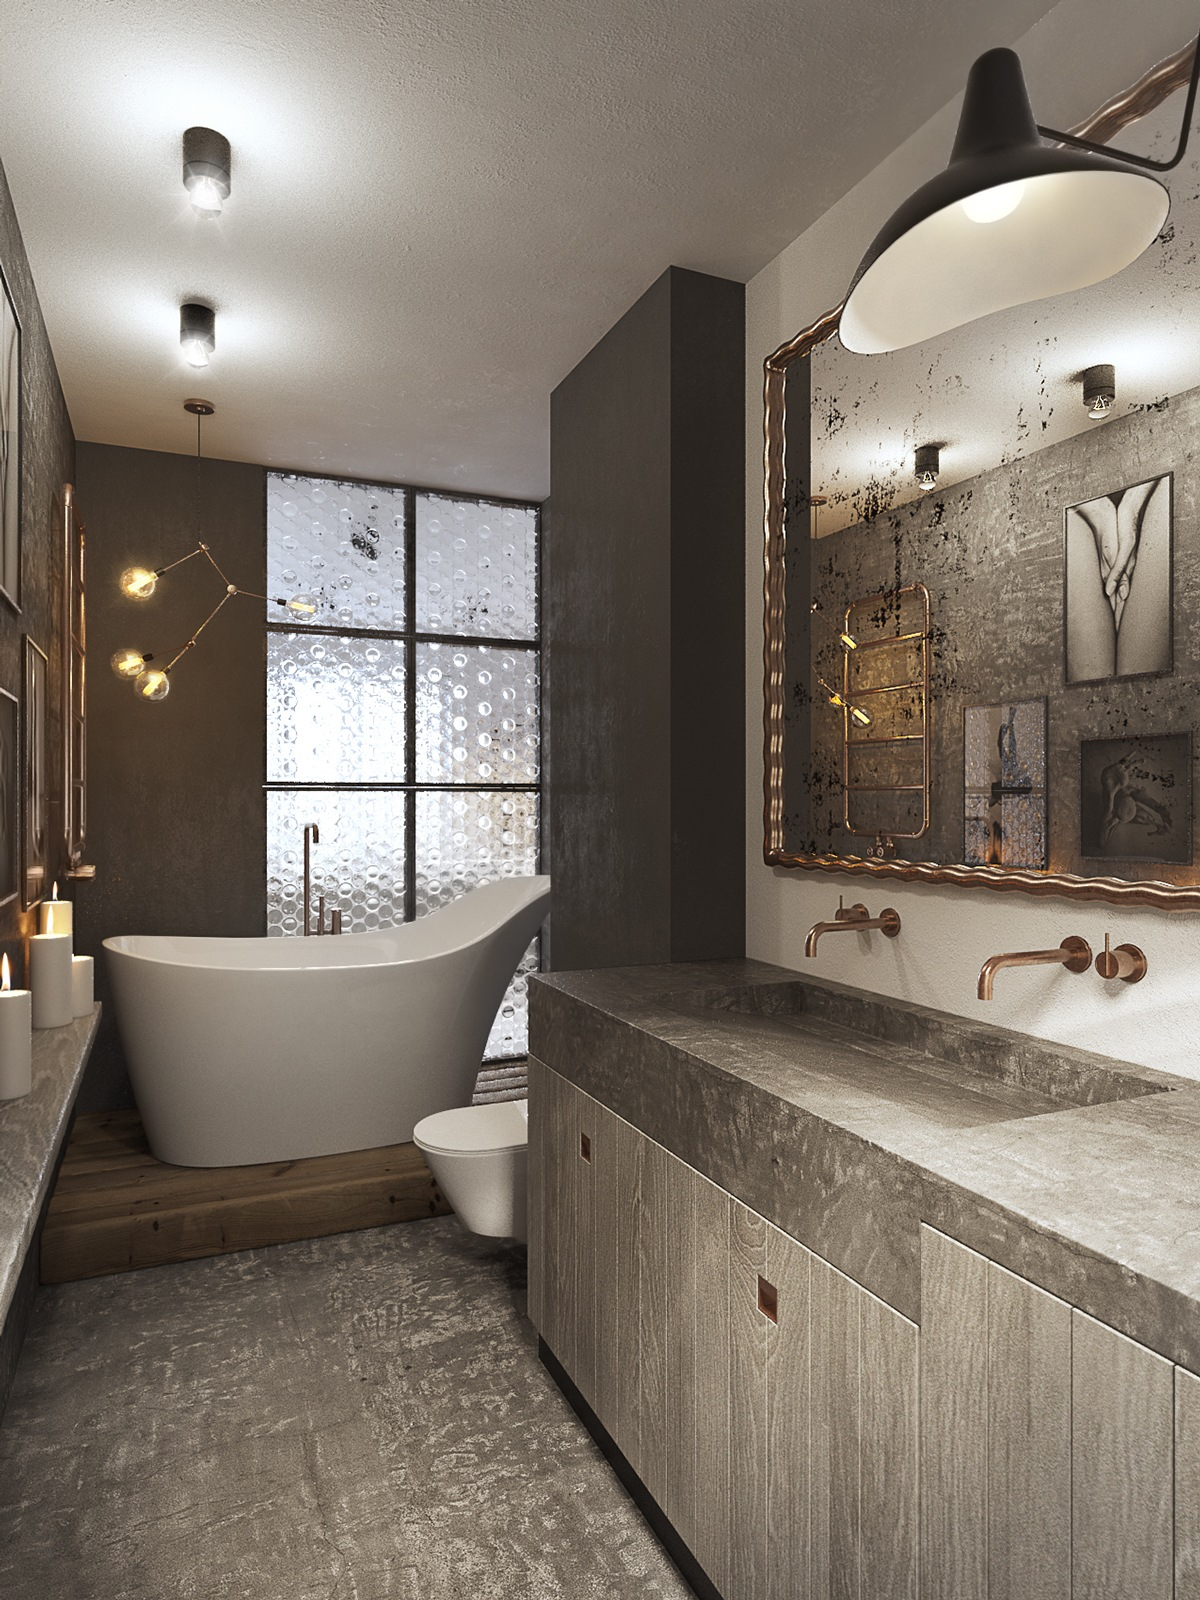 51 Industrial Style Bathrooms Plus Ideas & Accessories You Can Copy From Them images 30